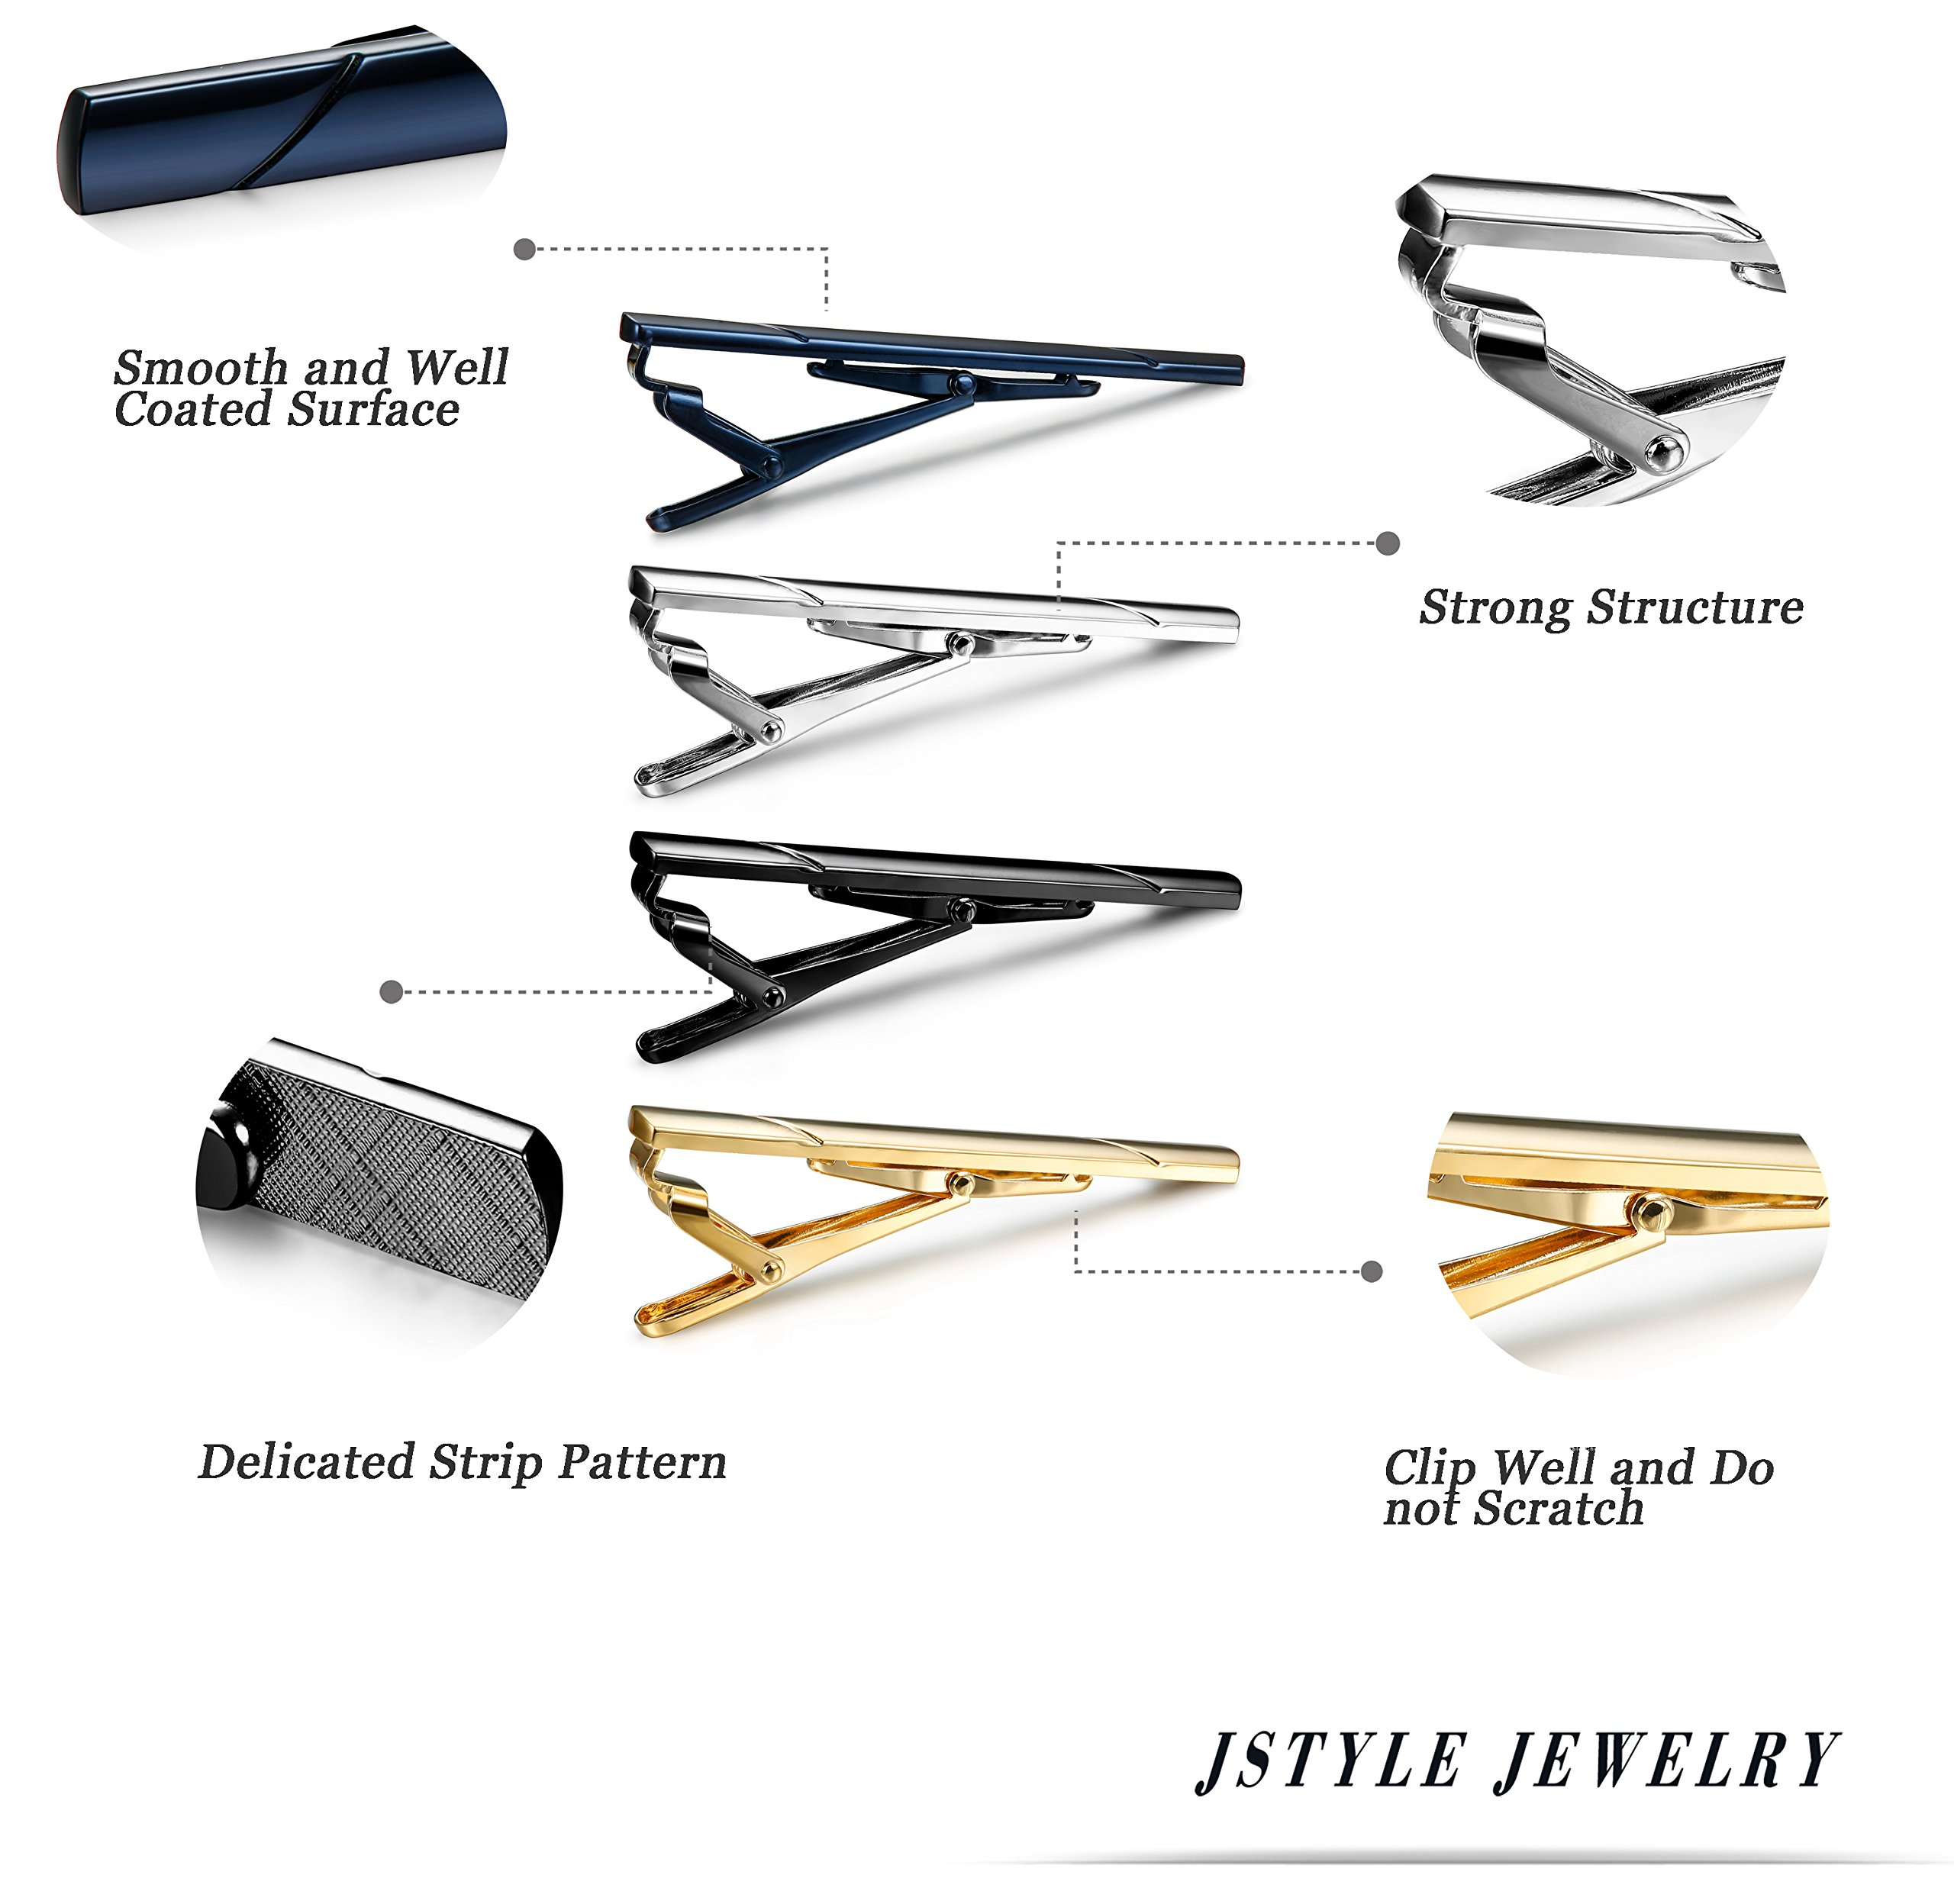 Jstyle 4 Pcs Tie Clips for Men Tie Bar Clip Set for Regular Ties Necktie Wedding Business Clips by Jstyle (Image #4)